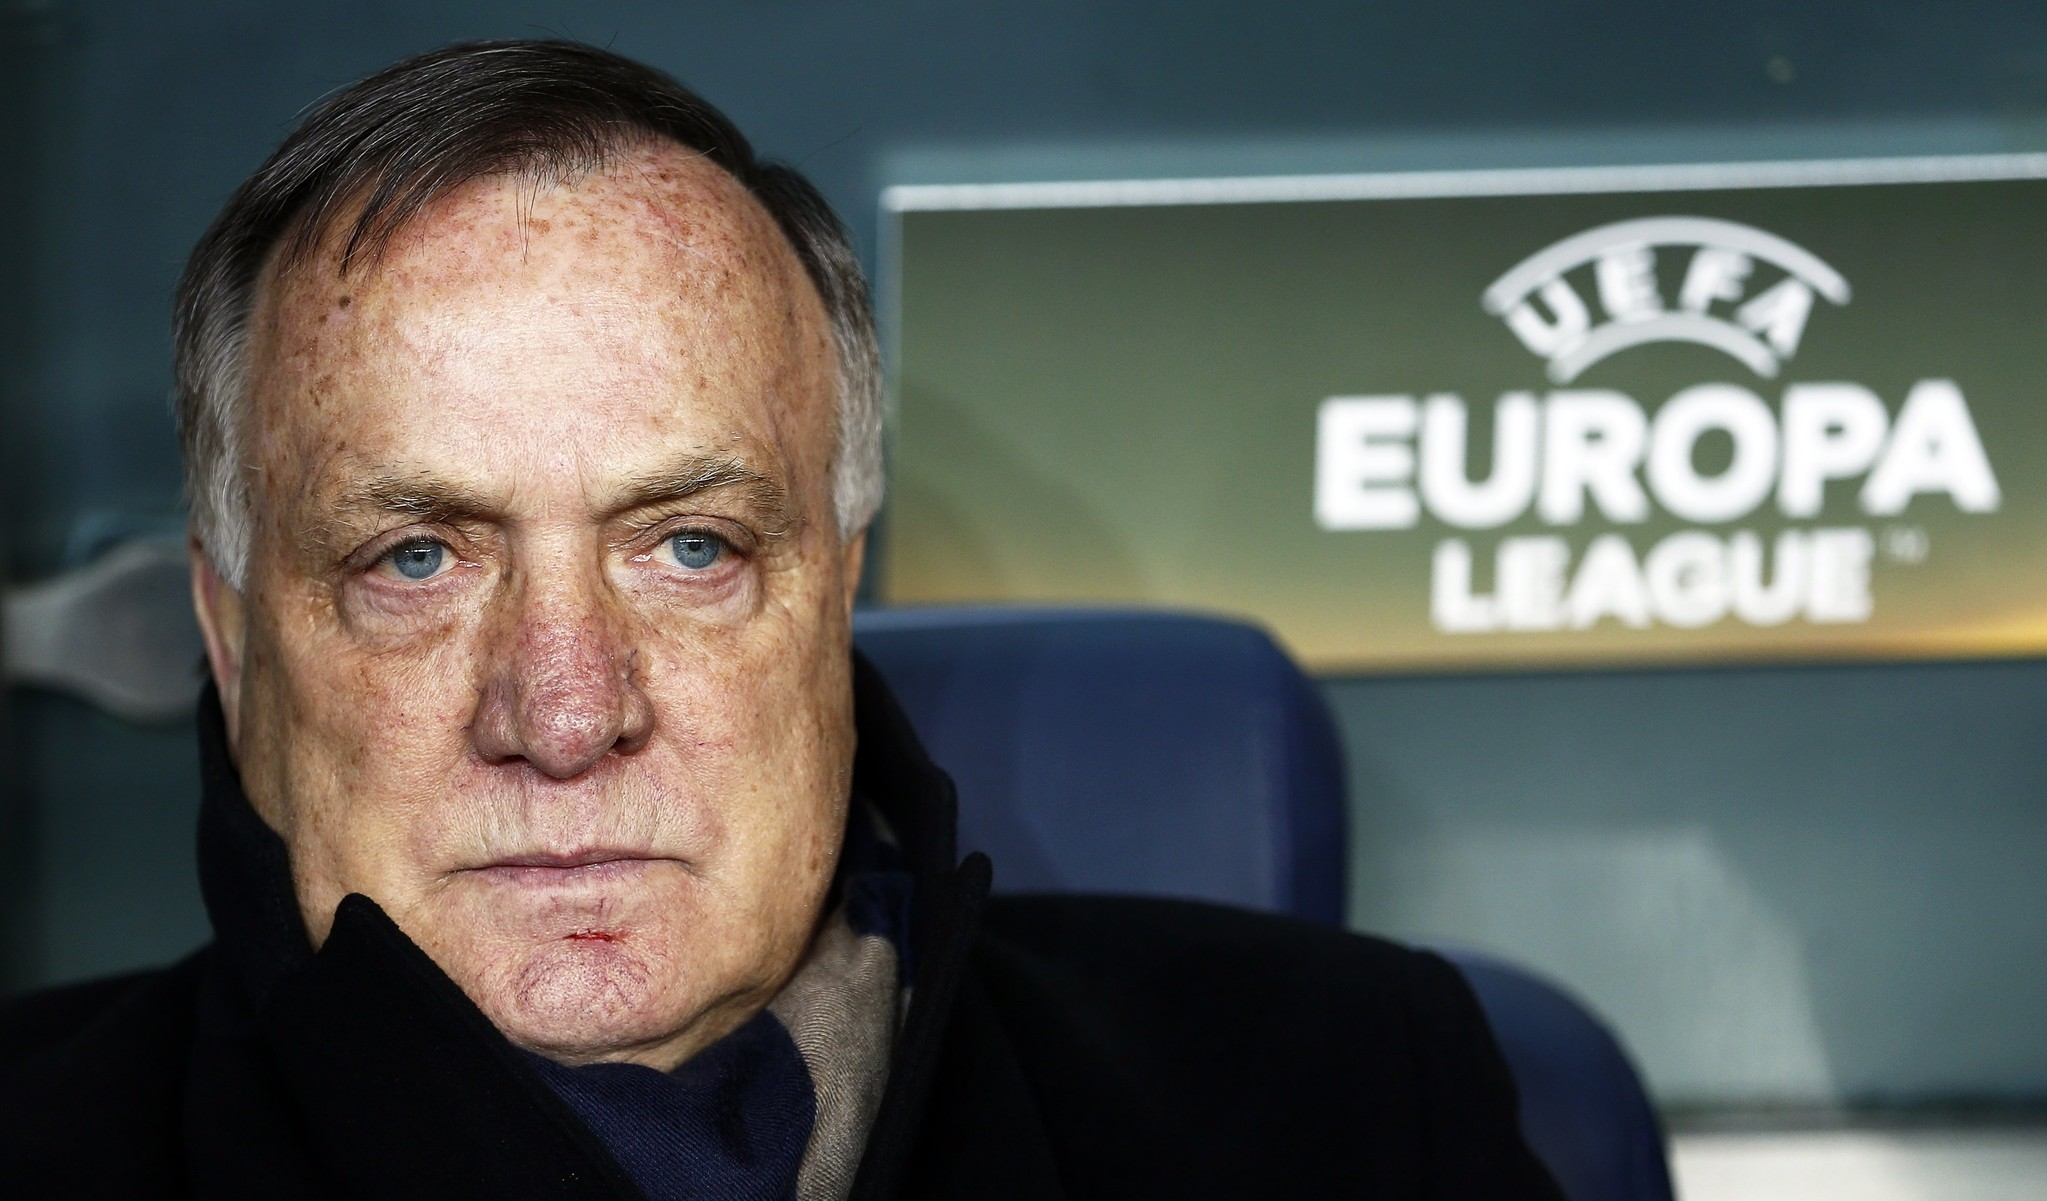 Fenerbahce's head coach Dick Advocaat during the UEFA Europa League round of 32, second leg soccer match between Fenerbahce Istanbul and FK Krasnodar. (EPA Photo)